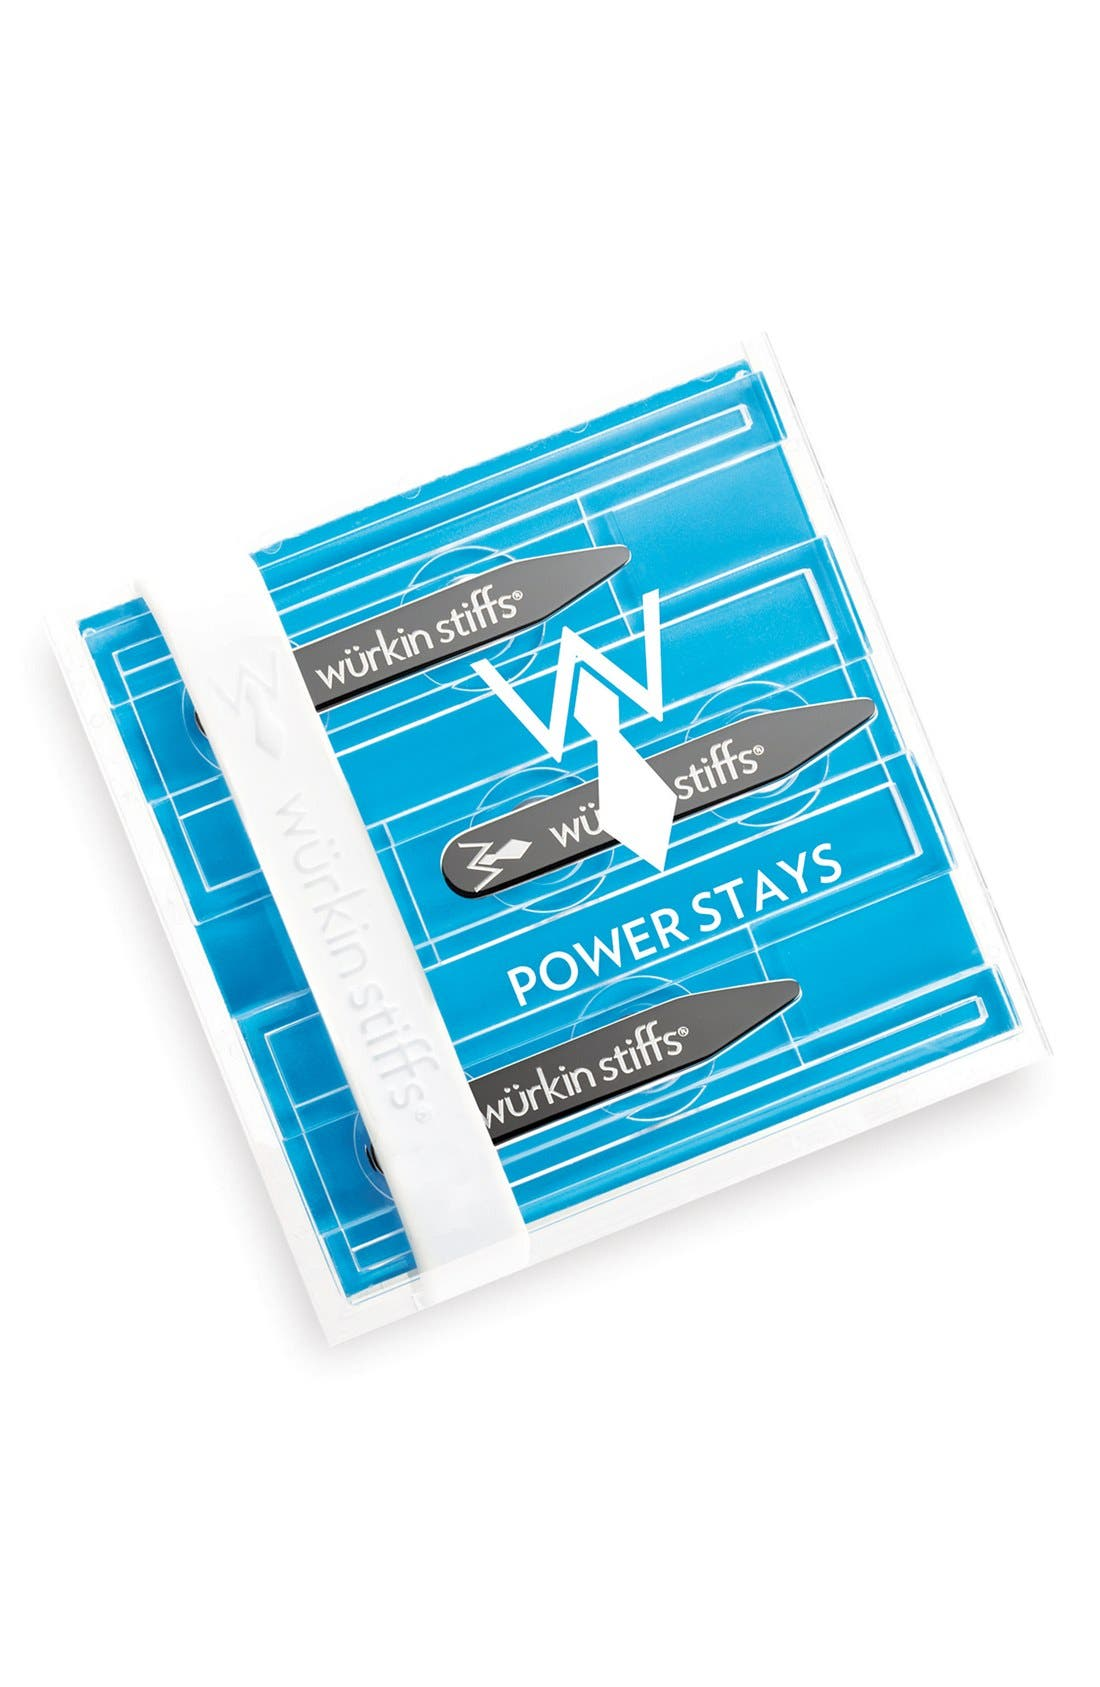 'Power Stays' Collar Stays,                             Main thumbnail 1, color,                             NO COLOR